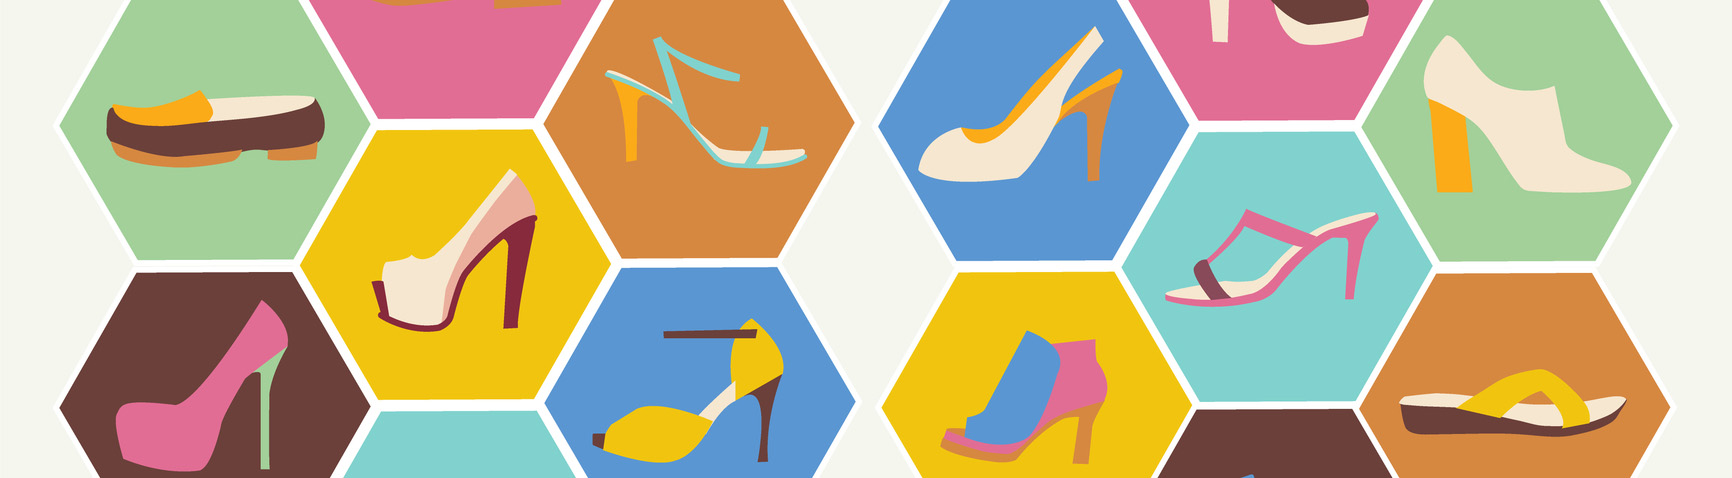 Women, find your UK shoe size with our UK shoe size chart!